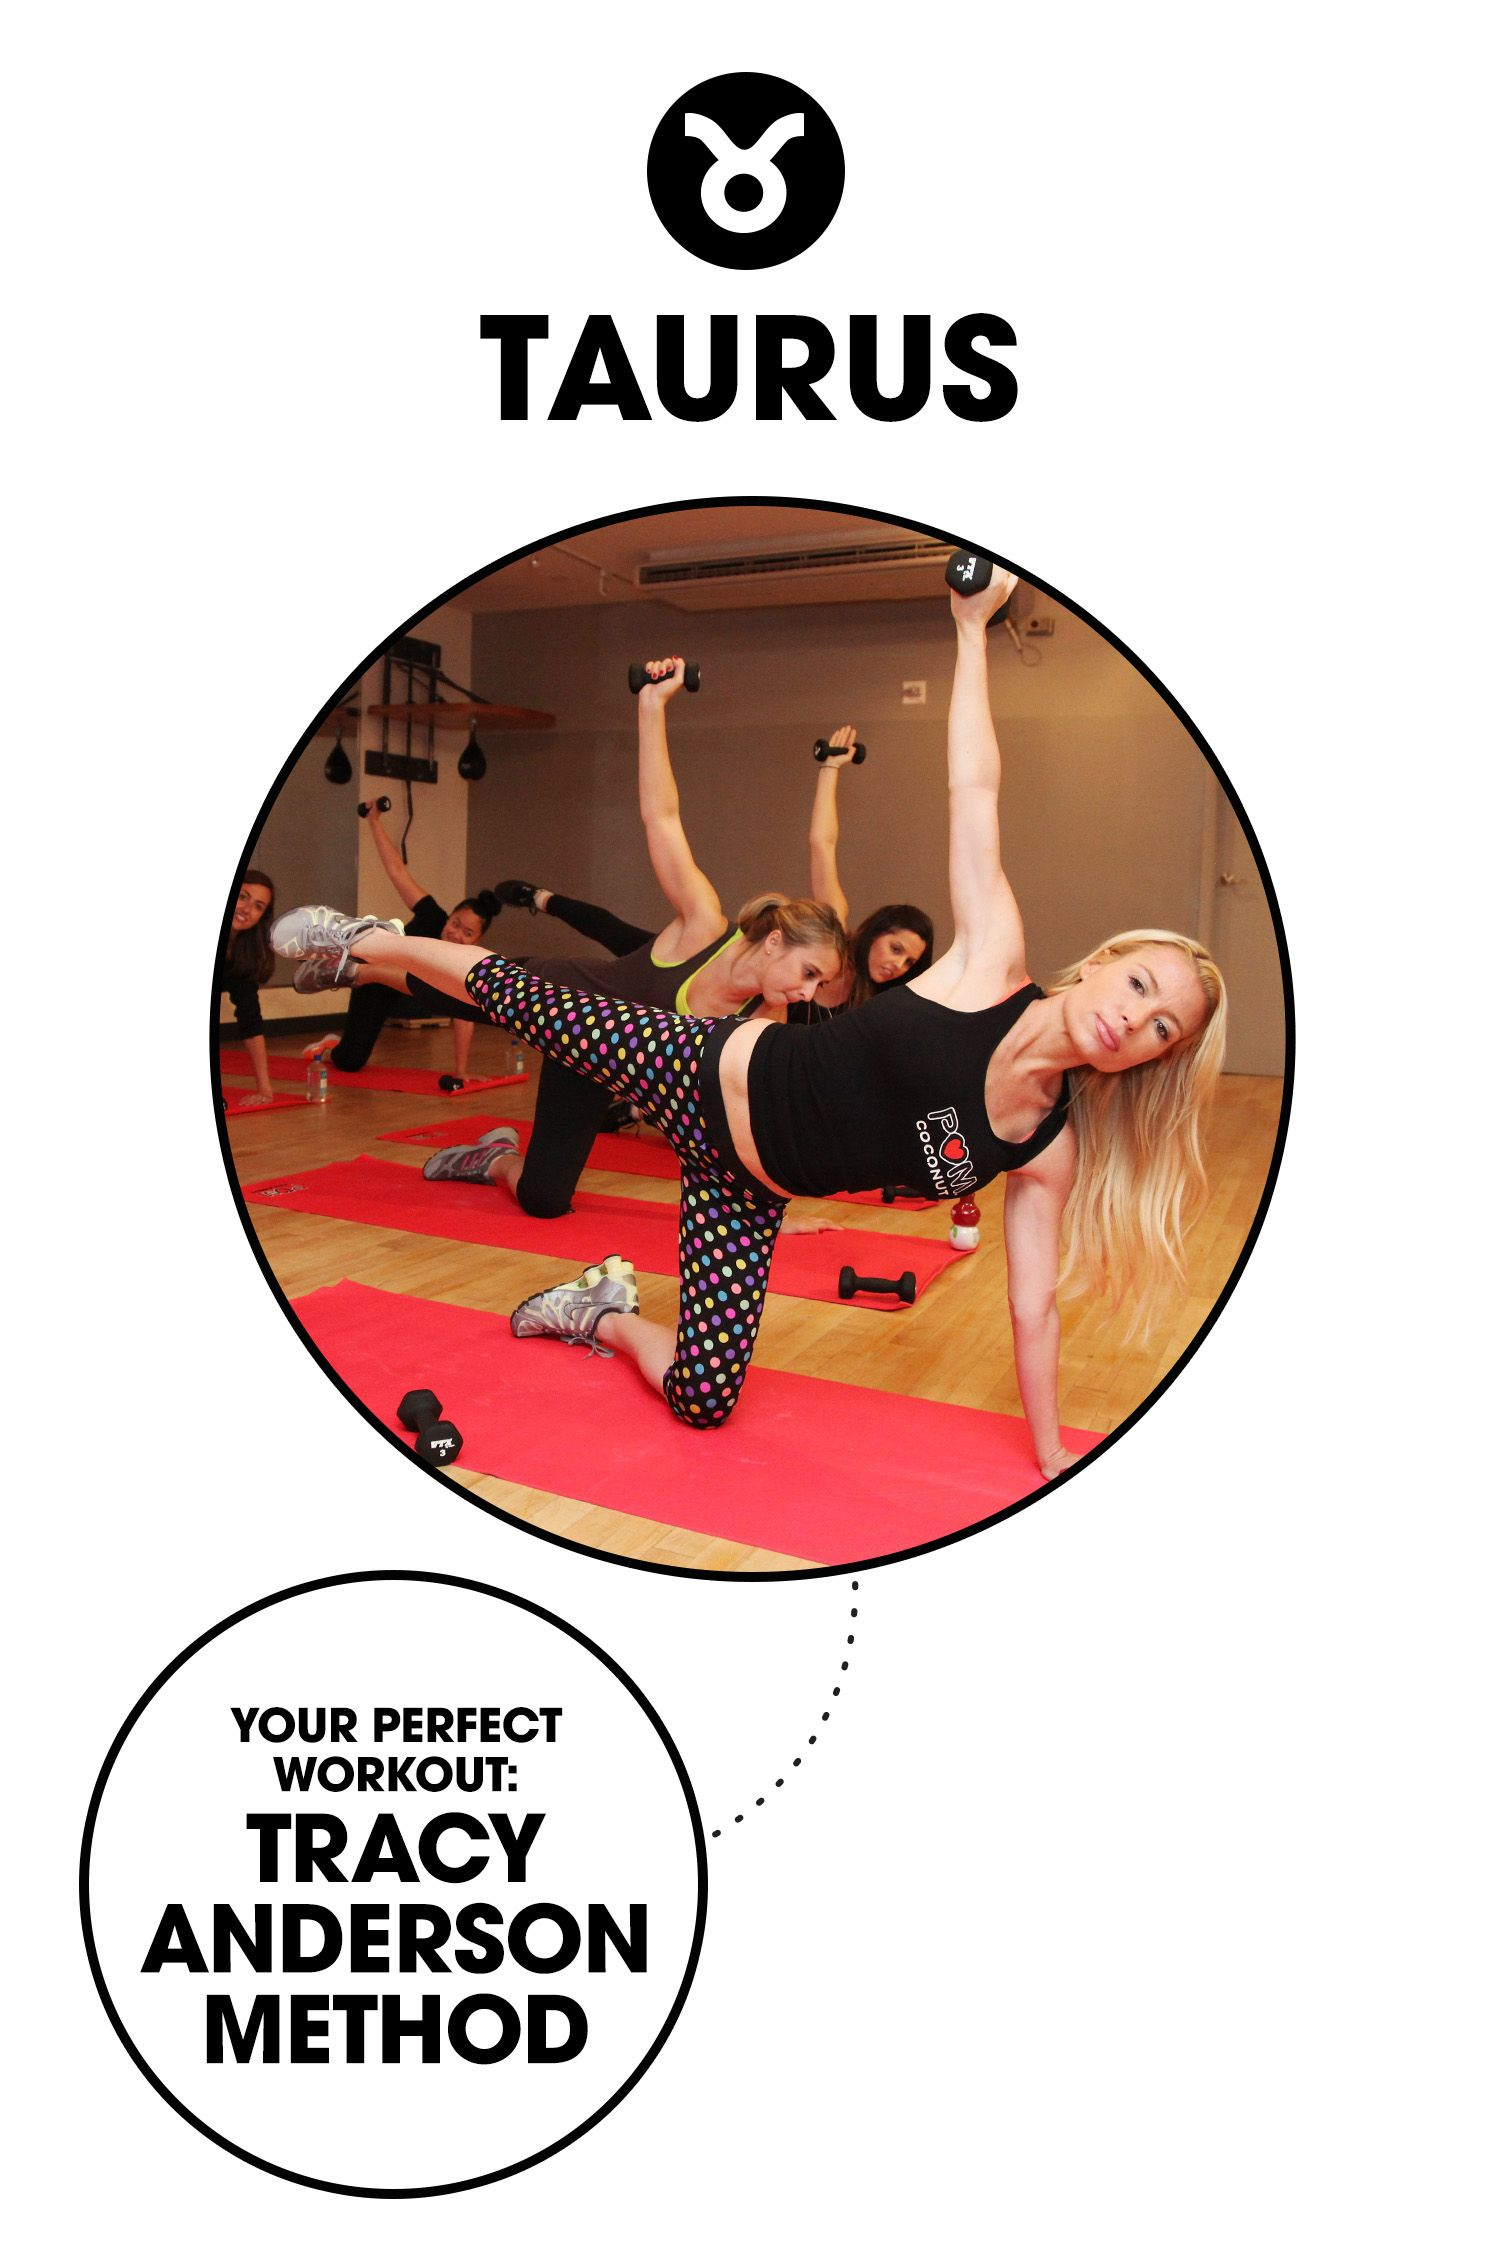 """<p><strong>What it is: </strong><a href=""""http://tracyanderson.com/"""">The body-whittling dance cardio workout</a> that svelte celebs like Gwyneth Paltrow and Jennifer Lopez swear by.</p><p><strong>Why you'll love it: </strong>You want a lifestyle, not a fad, and Anderson is about a well-rounded approach to wellness—no matter what your individual goals are.</p>"""